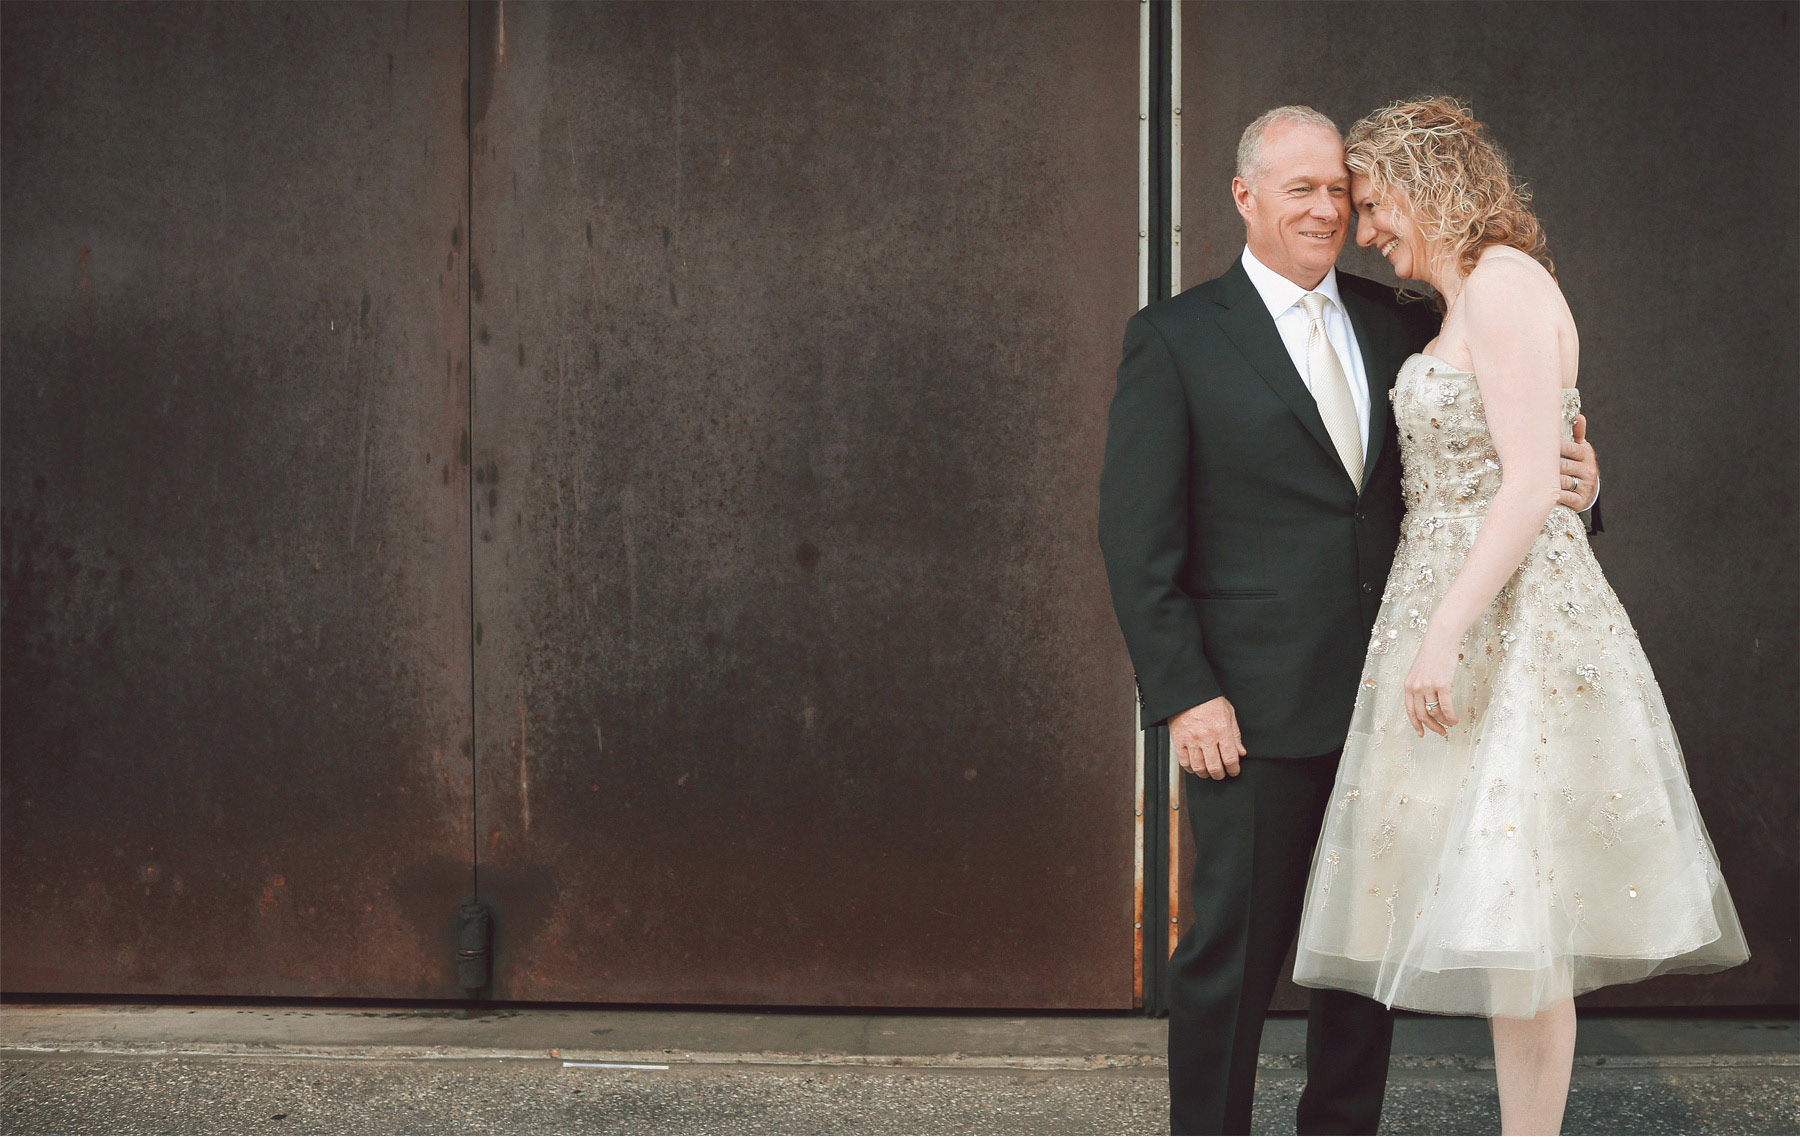 01-Minneapolis-Minnesota-Wedding-Photographer-by-Andrew-Vick-Photography-Spring-Downtown-Bride-Groom-Embrace-Vintage-Dannette-and-Darren.jpg